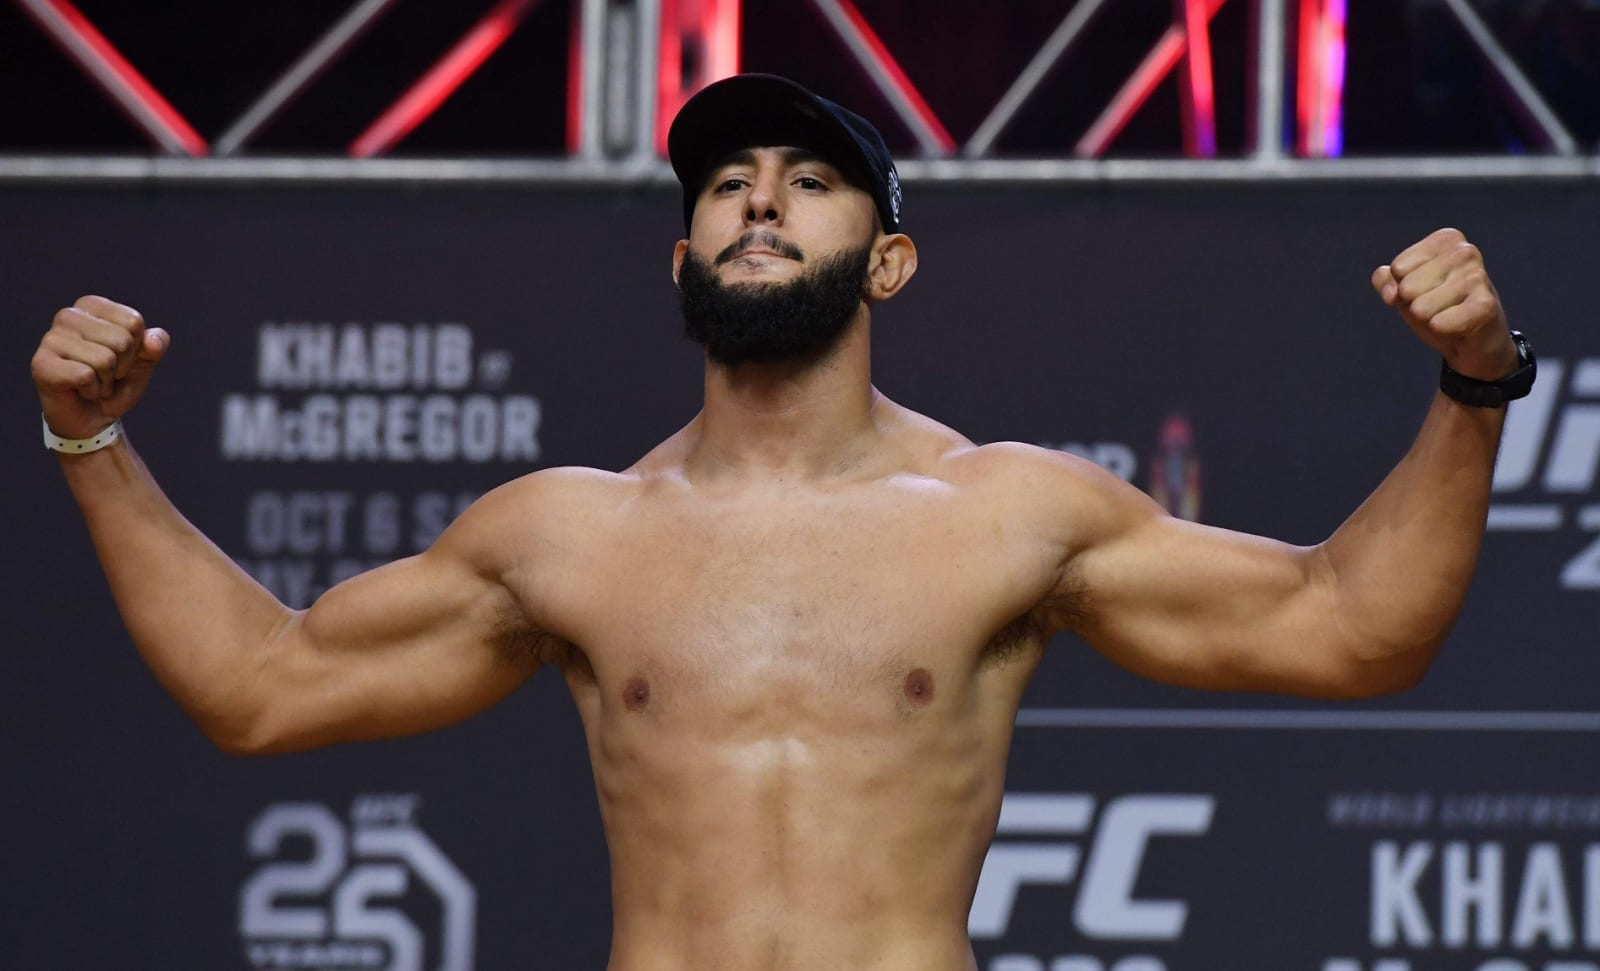 Please look out for this, he's notorious for this': Dominick Reyes ...